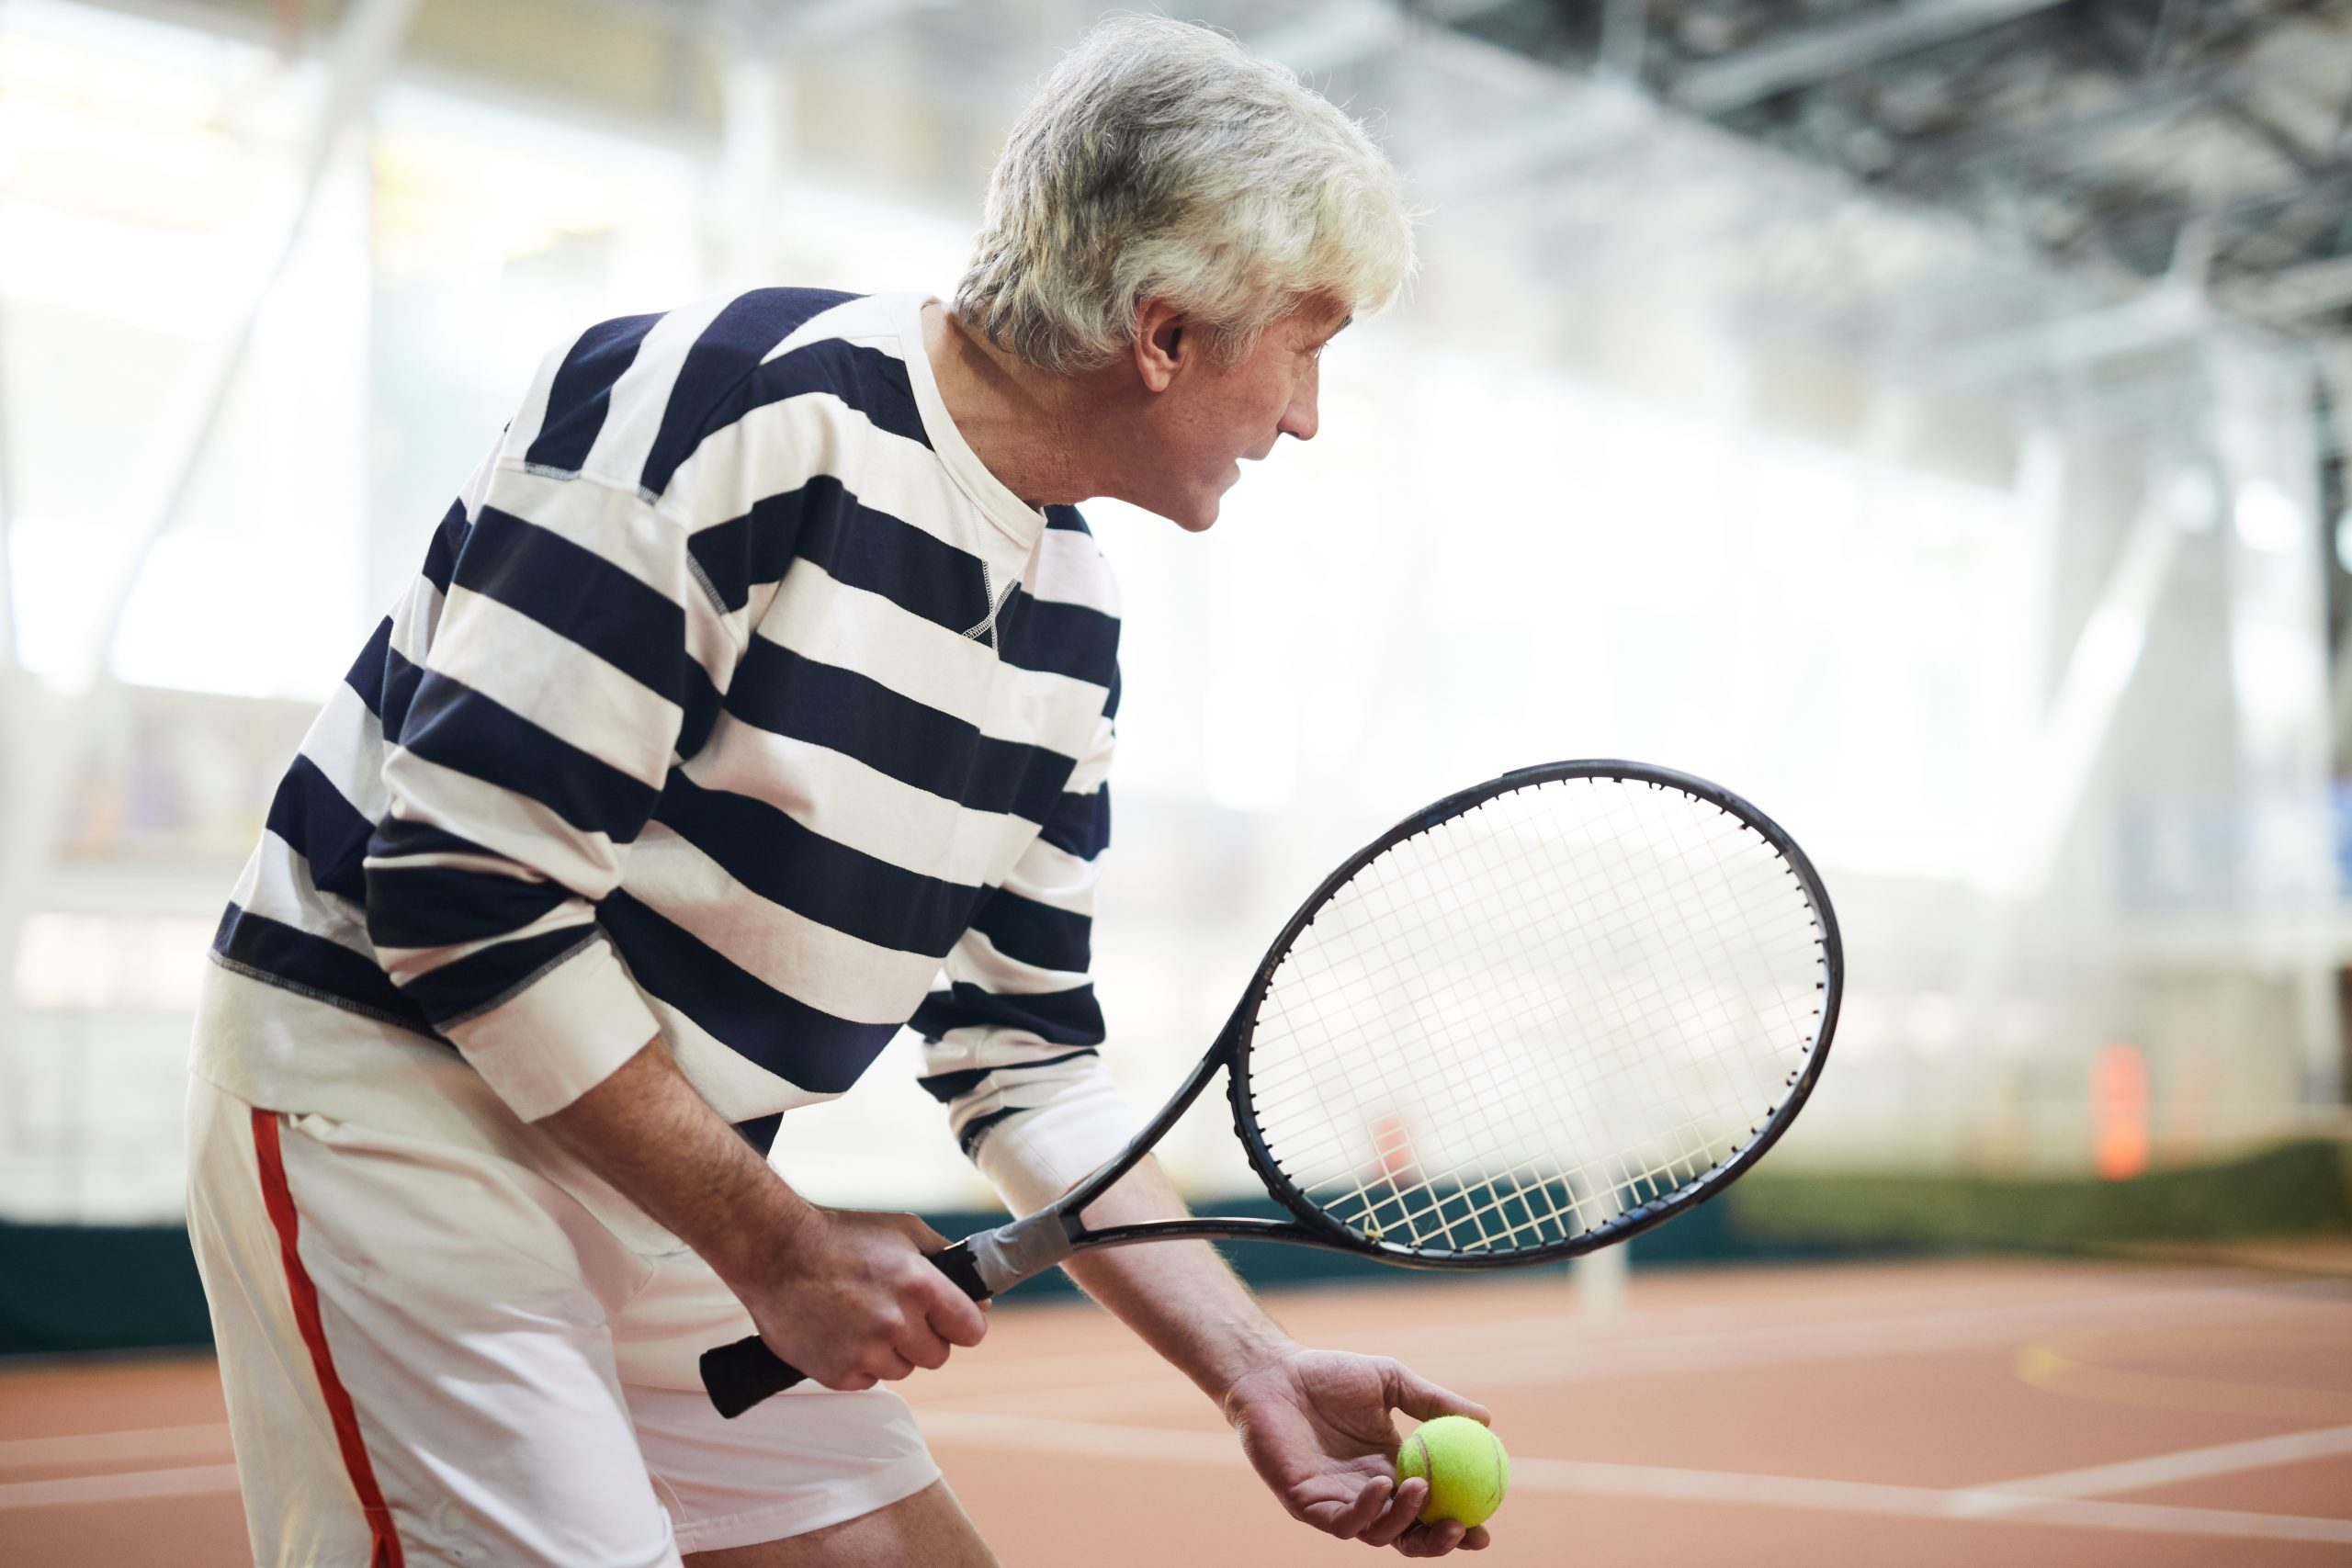 Grey-haired tennis player with racket going to throw and hit ball during game on stadium or court